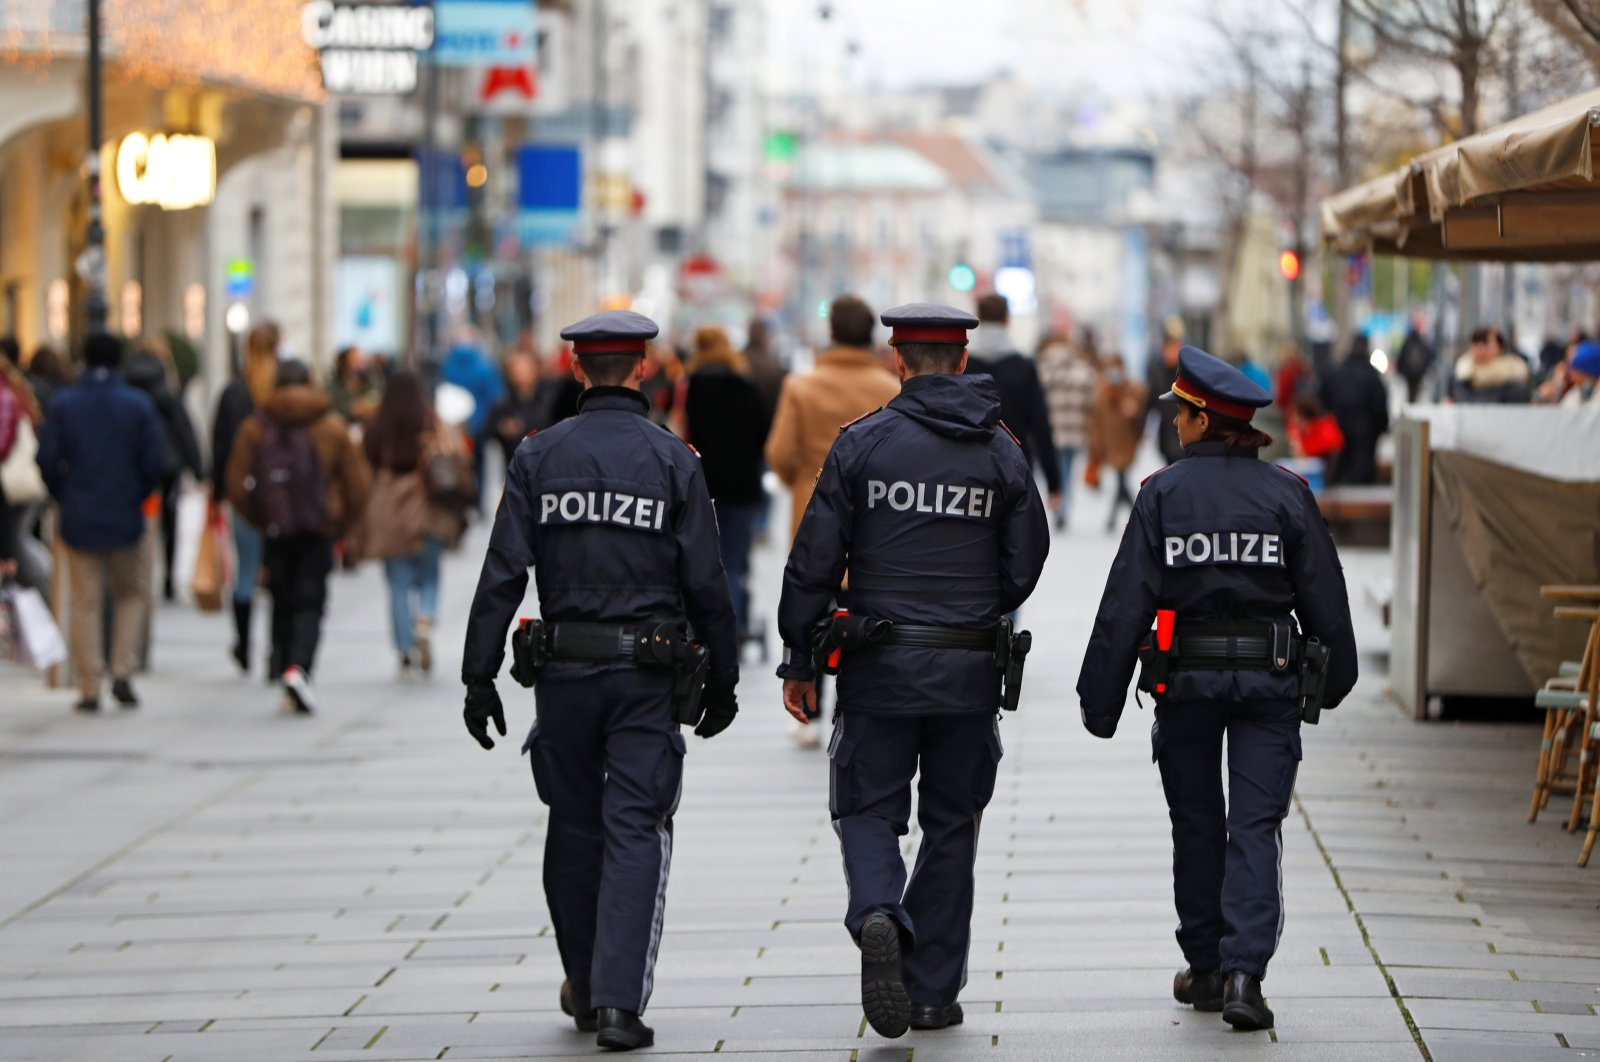 Police officers walk down a shopping street after the Austrian government announced a lockdown including the closure of all nonessential shops, as the spread of coronavirus continues, in Vienna, Austria, Nov. 16, 2020. (Reuters Photo)